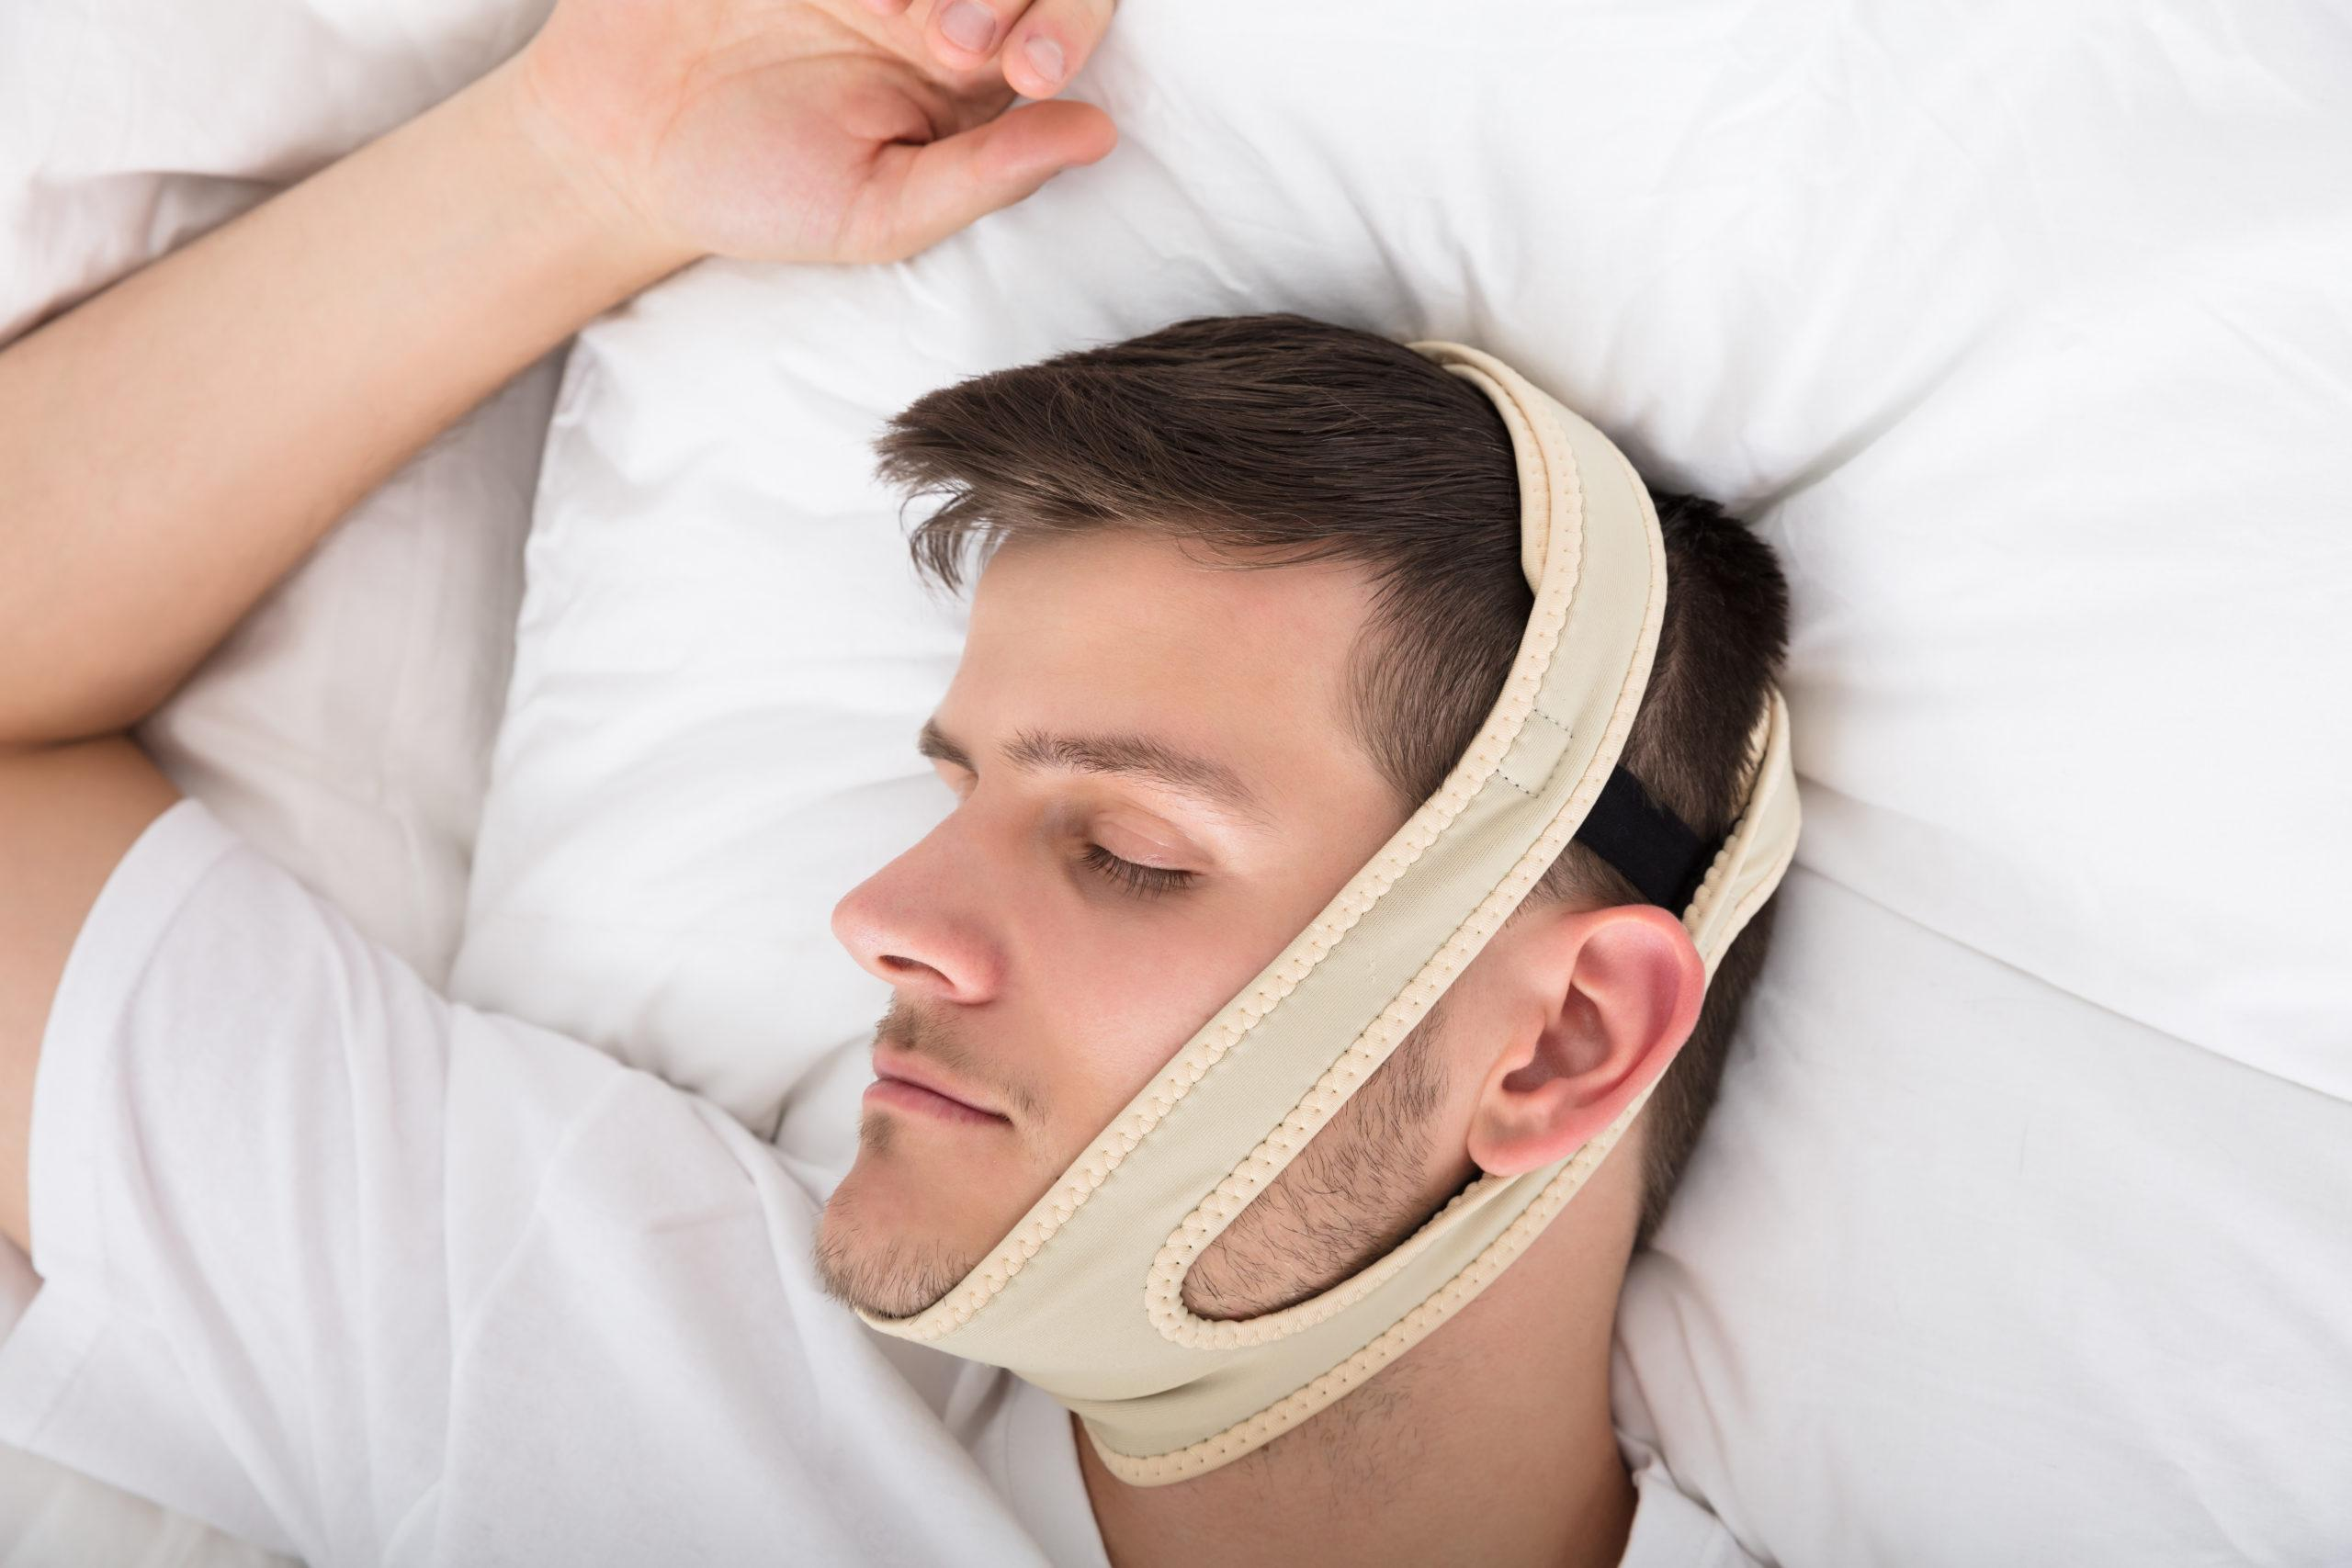 Chin Strap Is An Example Of Anti-Snoring Device